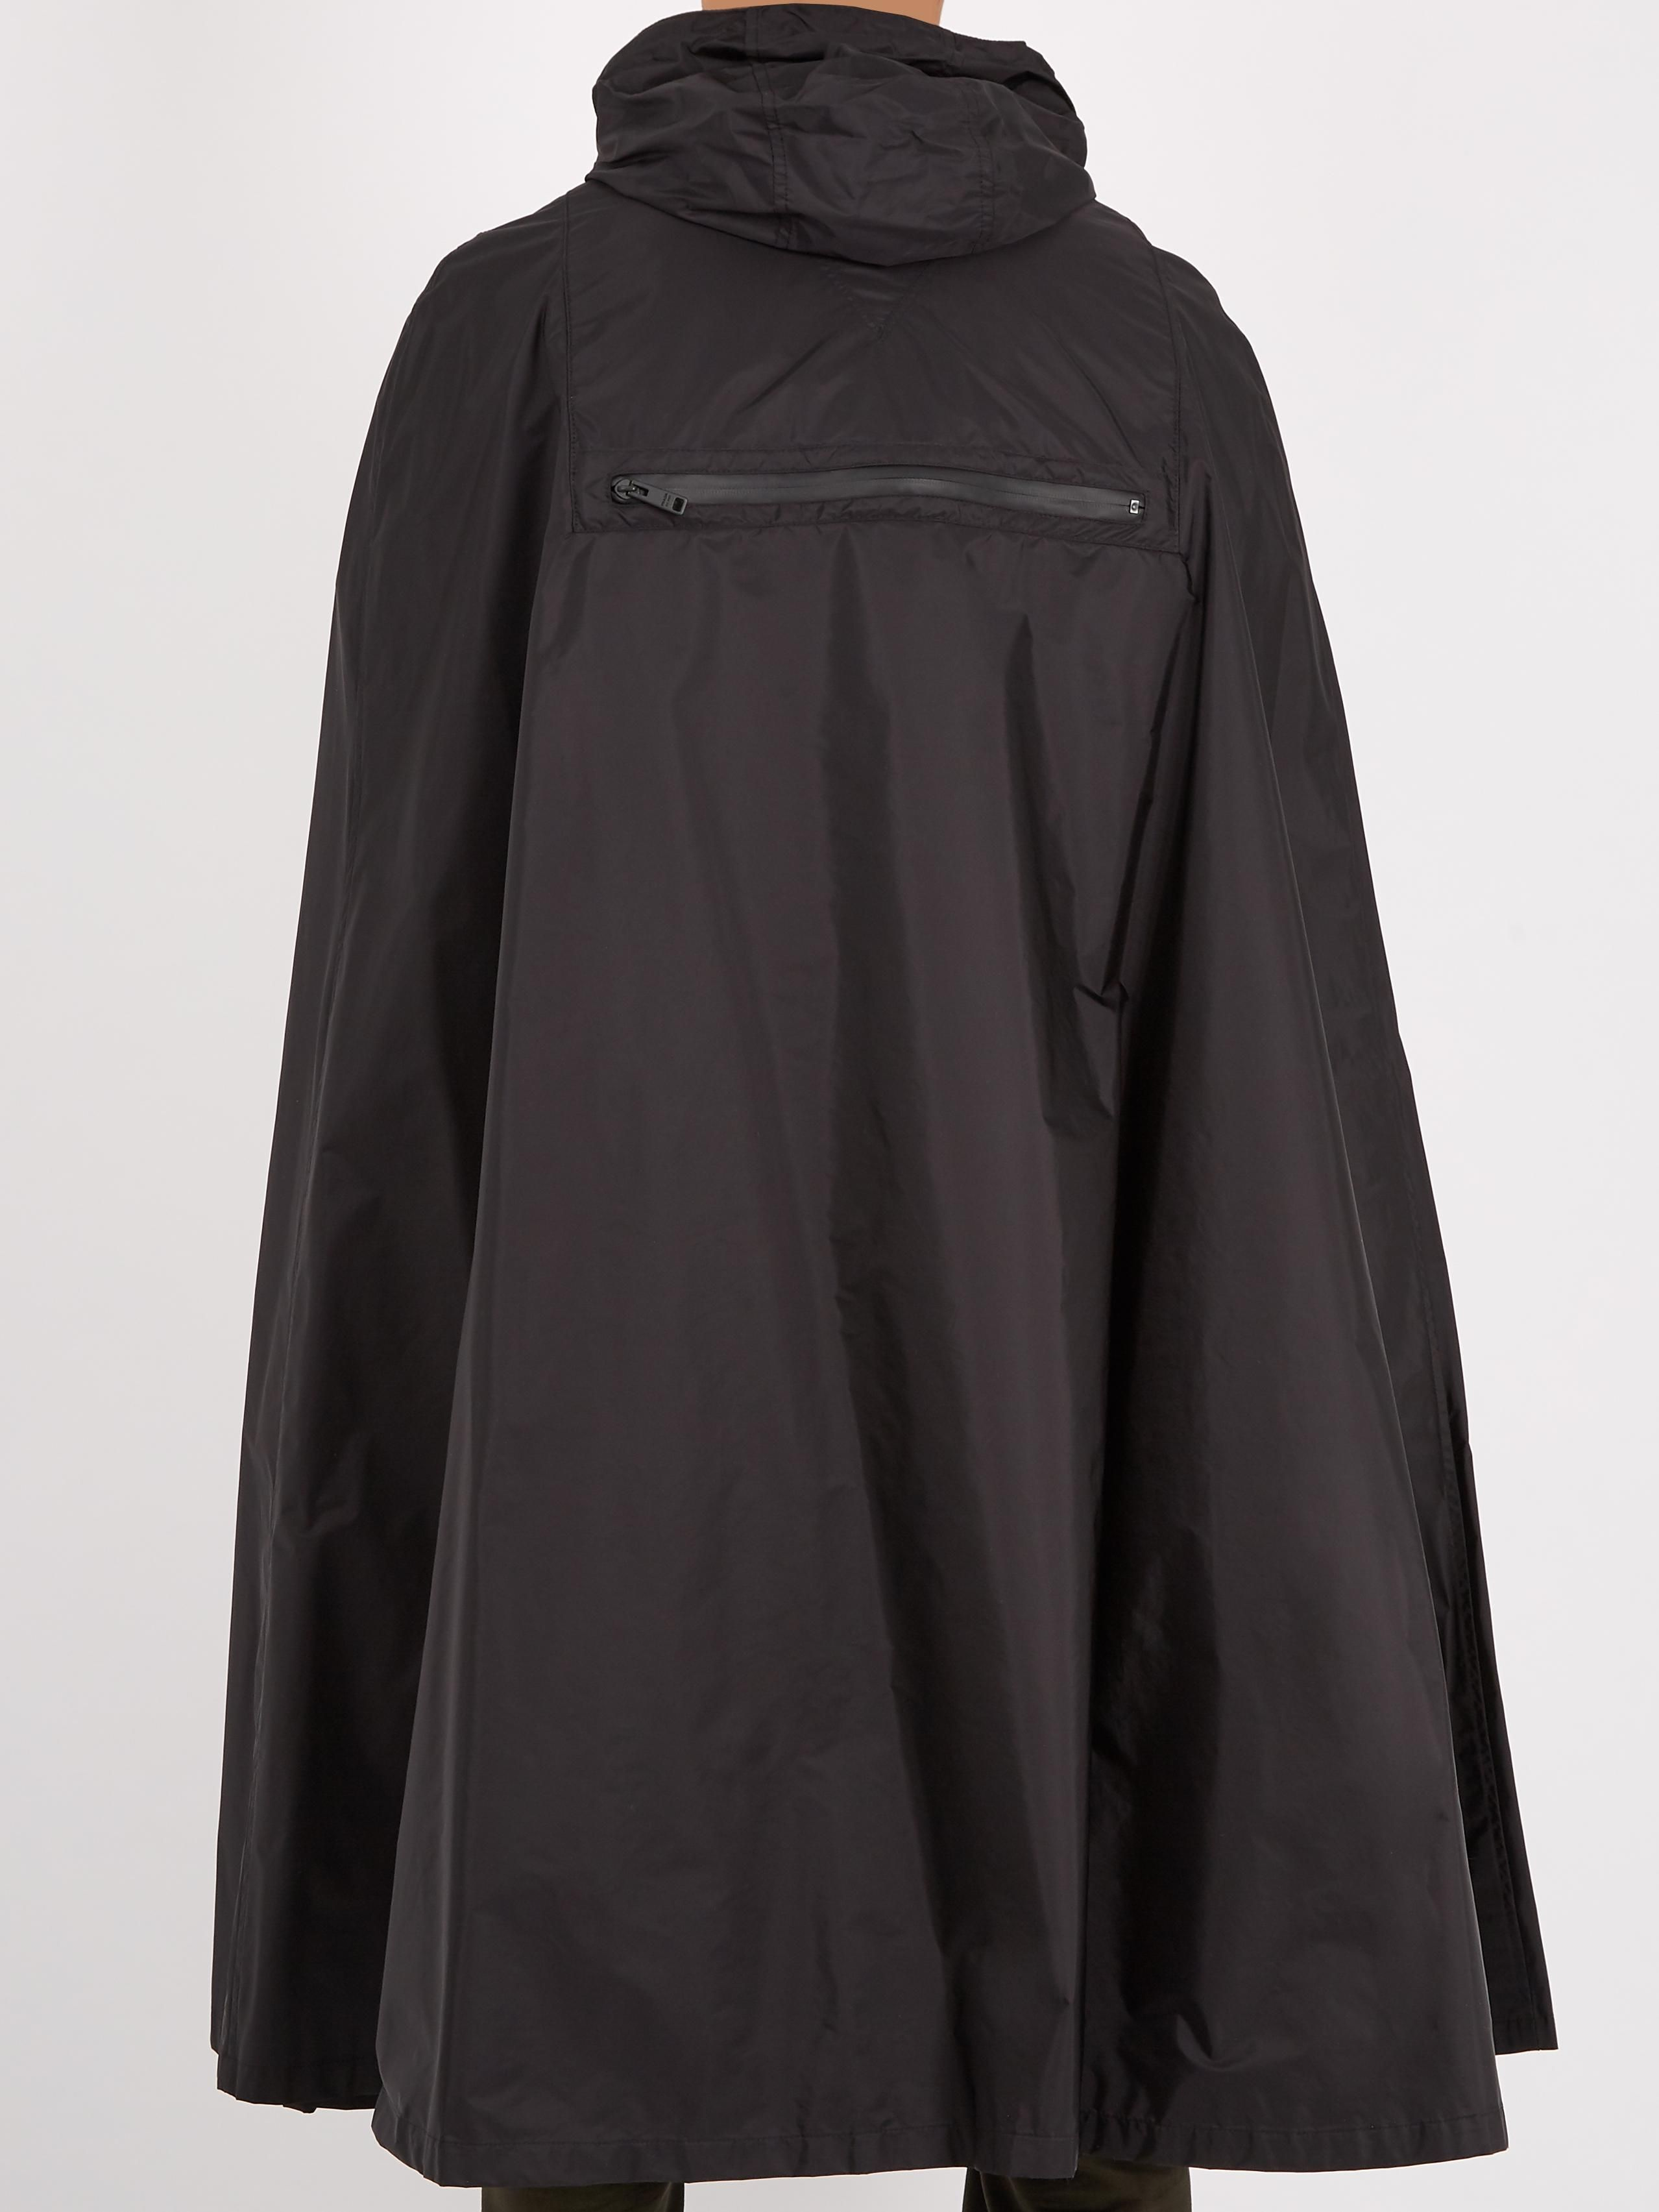 Products Related to Prada Black Waterproof Nylon Cape Coat in Black for Men 8c9136e06